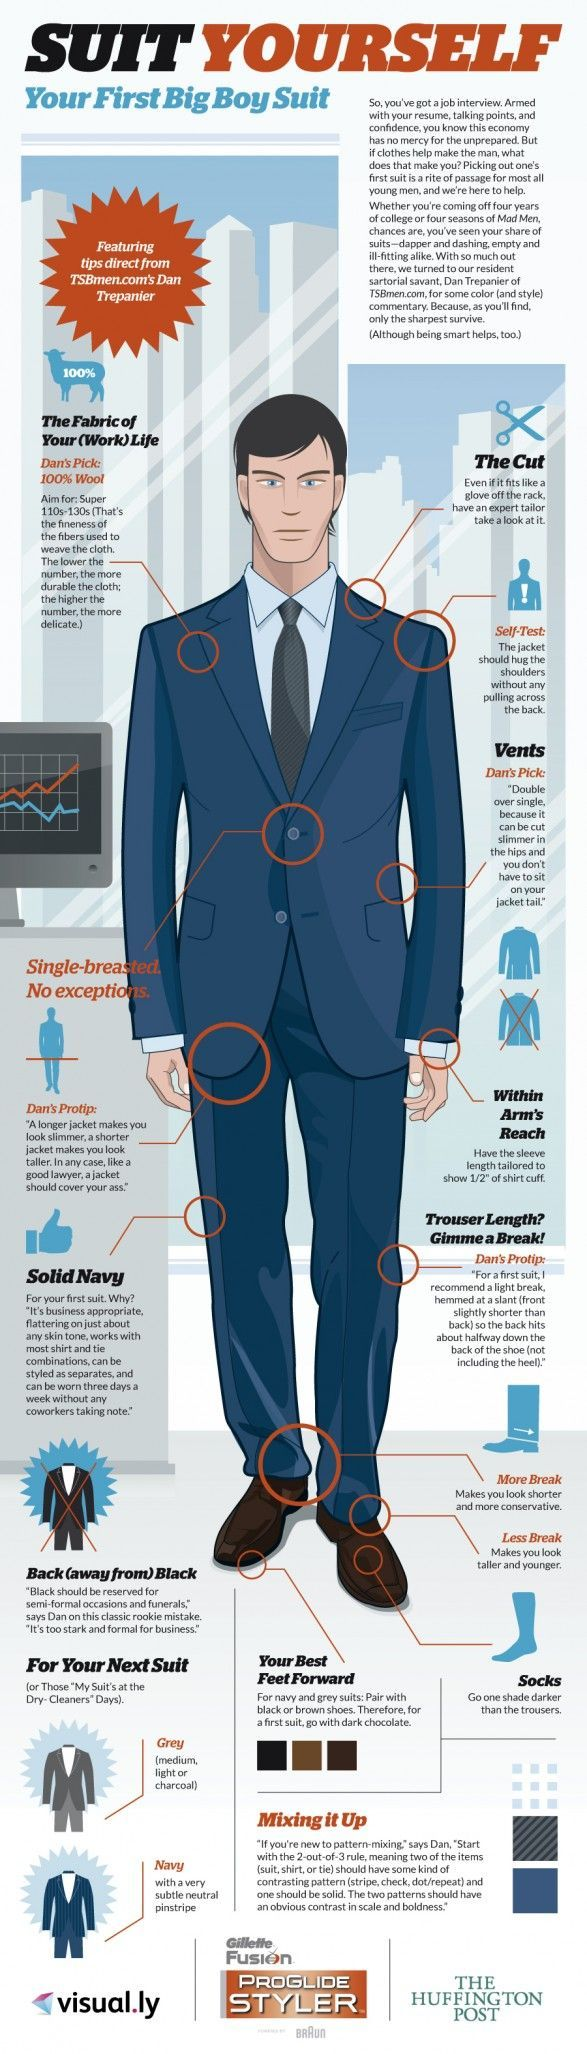 Menswear: The First Big Boy Suit